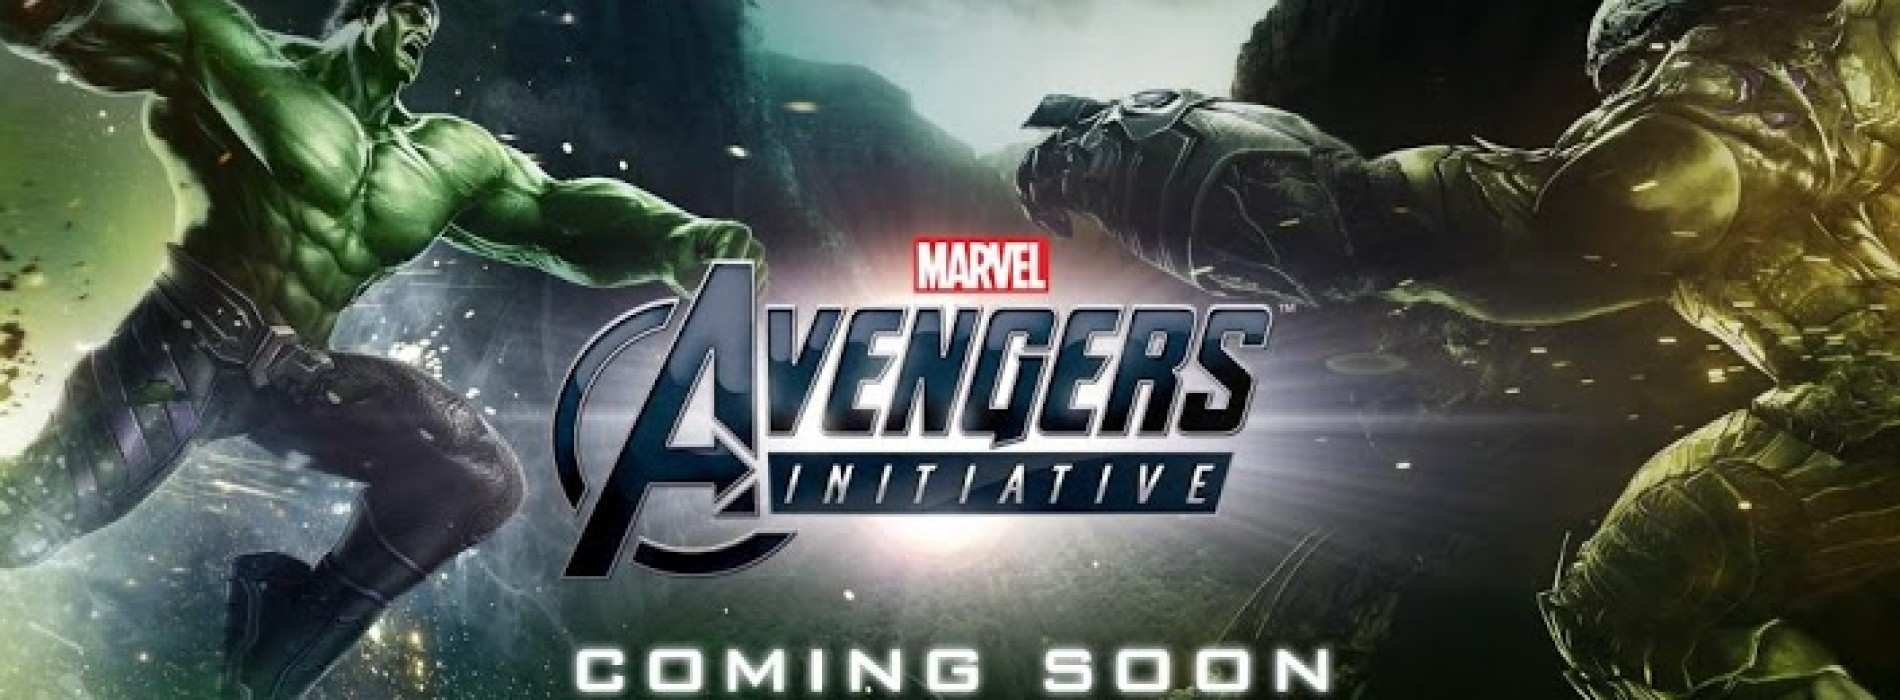 Avengers Initiative launches for select Android devices